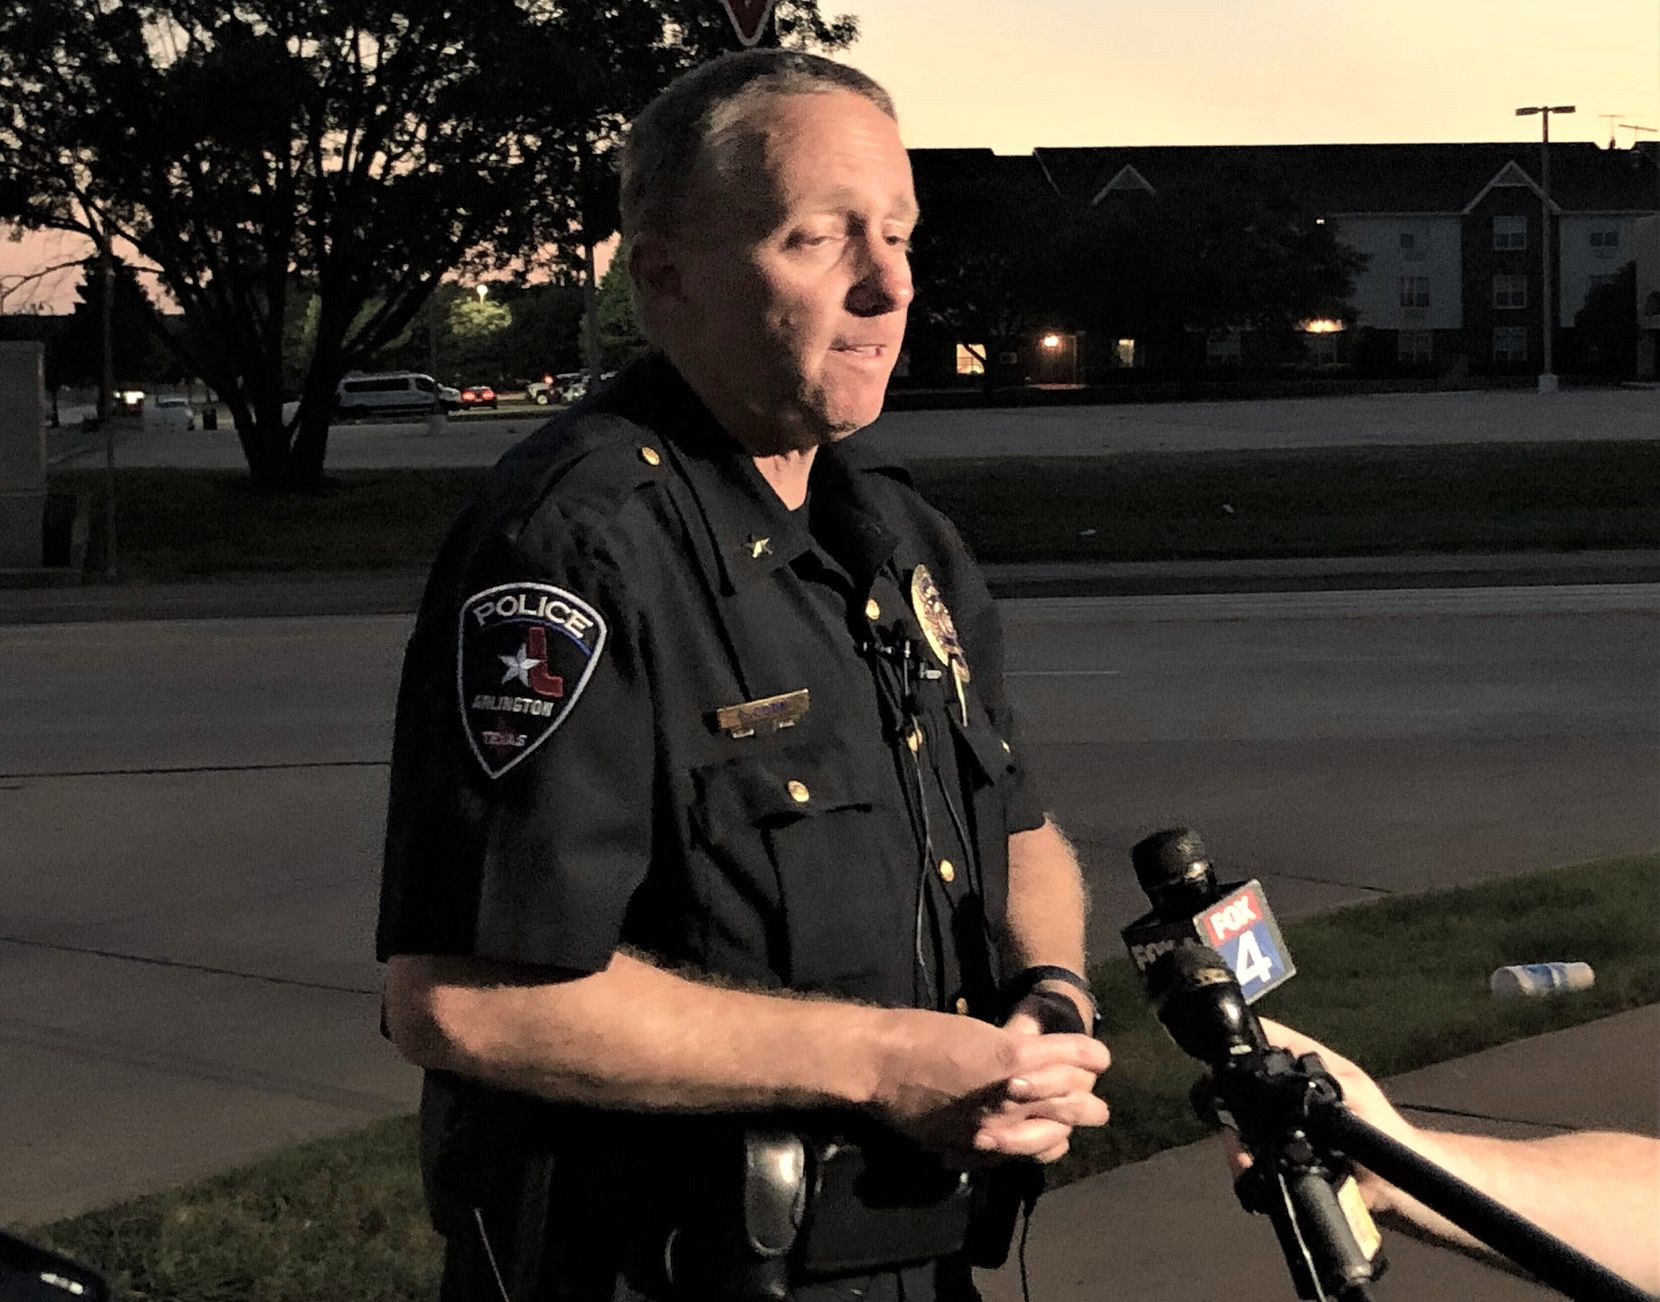 Arlington police Deputy Chief Christopher Cook said an officer was trying to break up a fight outside the Hurricane Harbor entrance when he heard a gunshot and saw the victim.